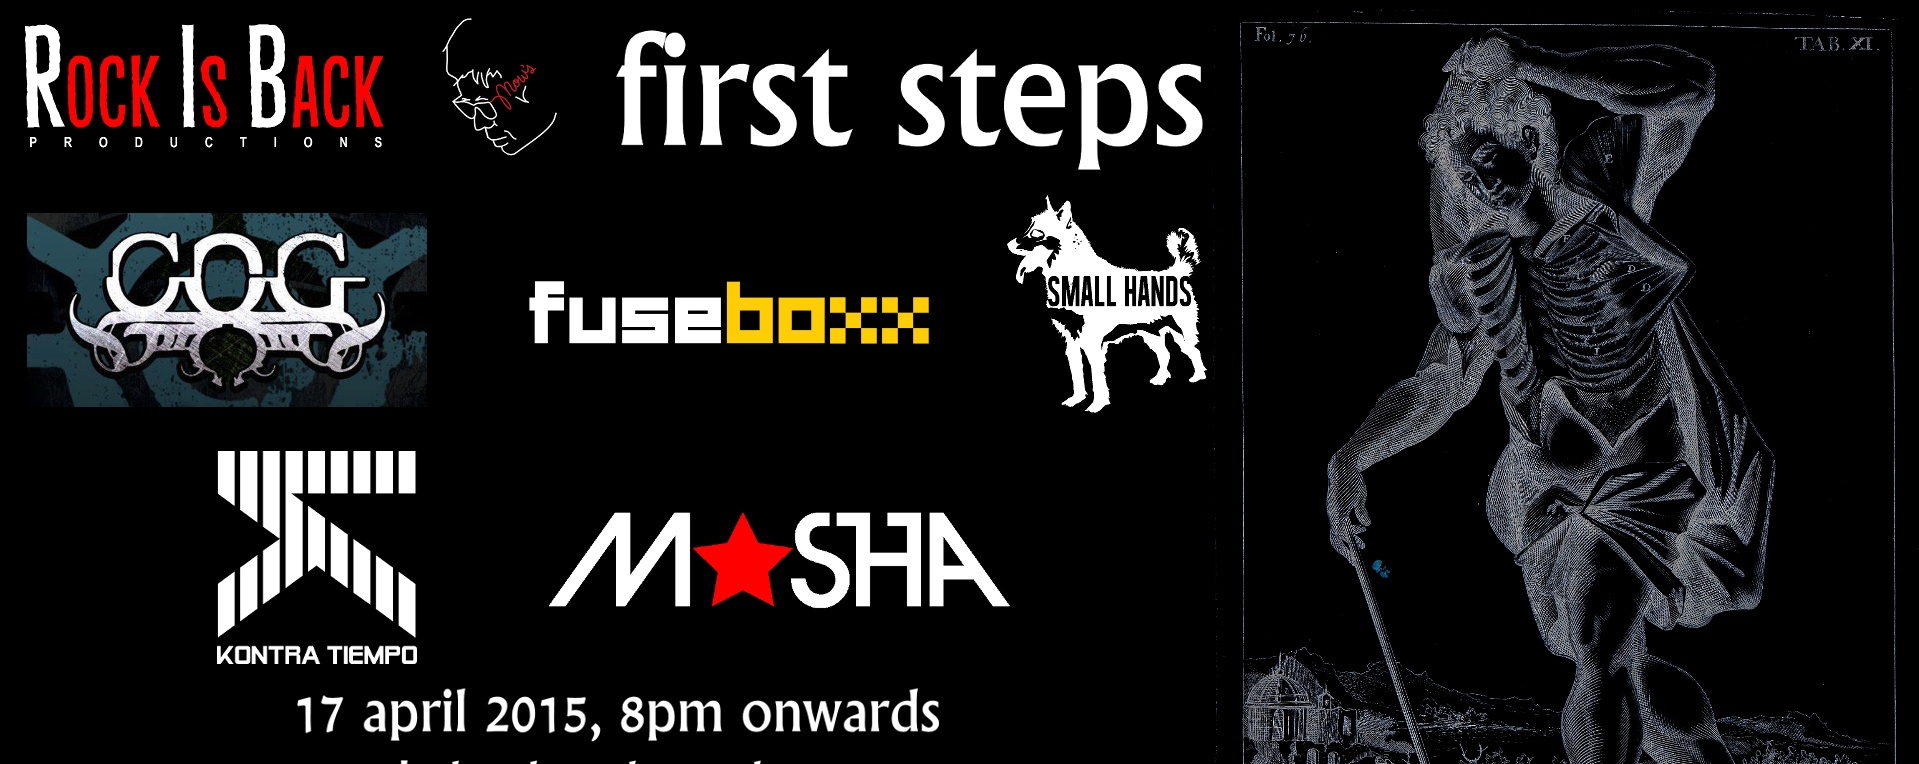 First Steps: The Rock Is Back Productions Launch